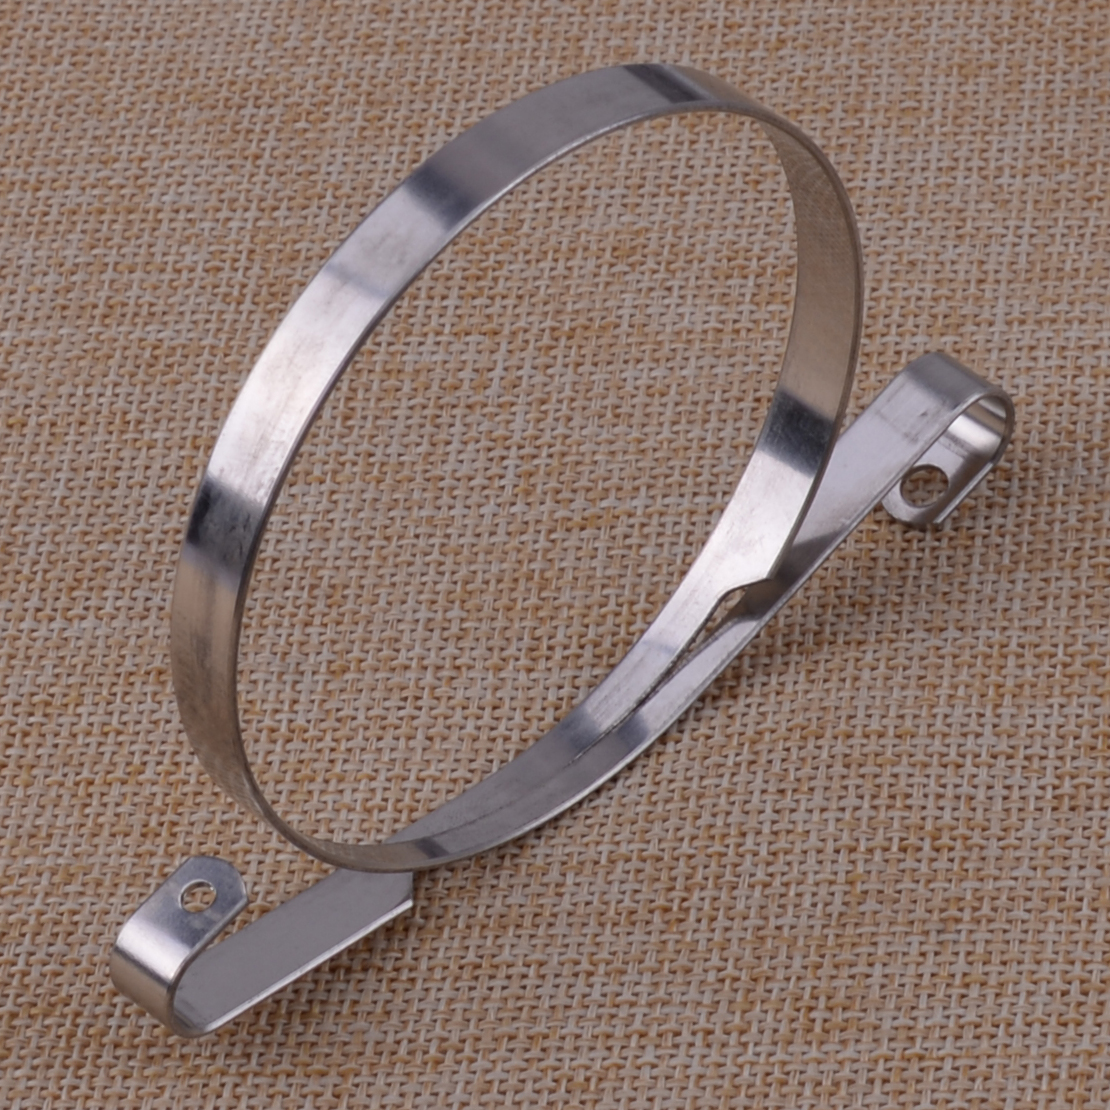 LETAOSK High Quality Silver Metal Chain Brake Band 537043001 Fit For Husqvarna 340 345 346XP 350 351 353 357 359 Chainsaw